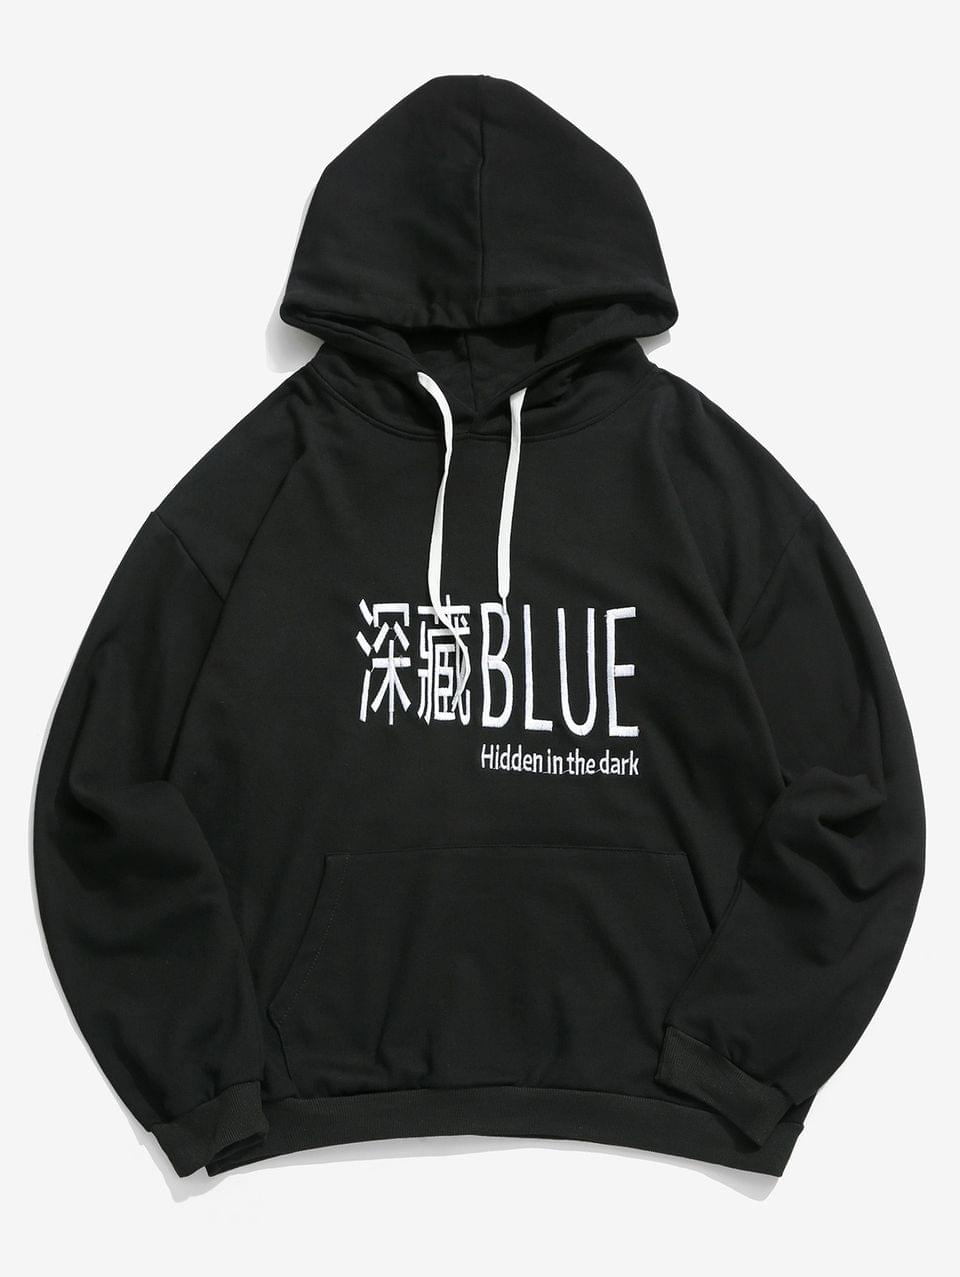 Men's Blue Hidden In The Dark Embroidery Kangaroo Pocket Hoodie - Black L